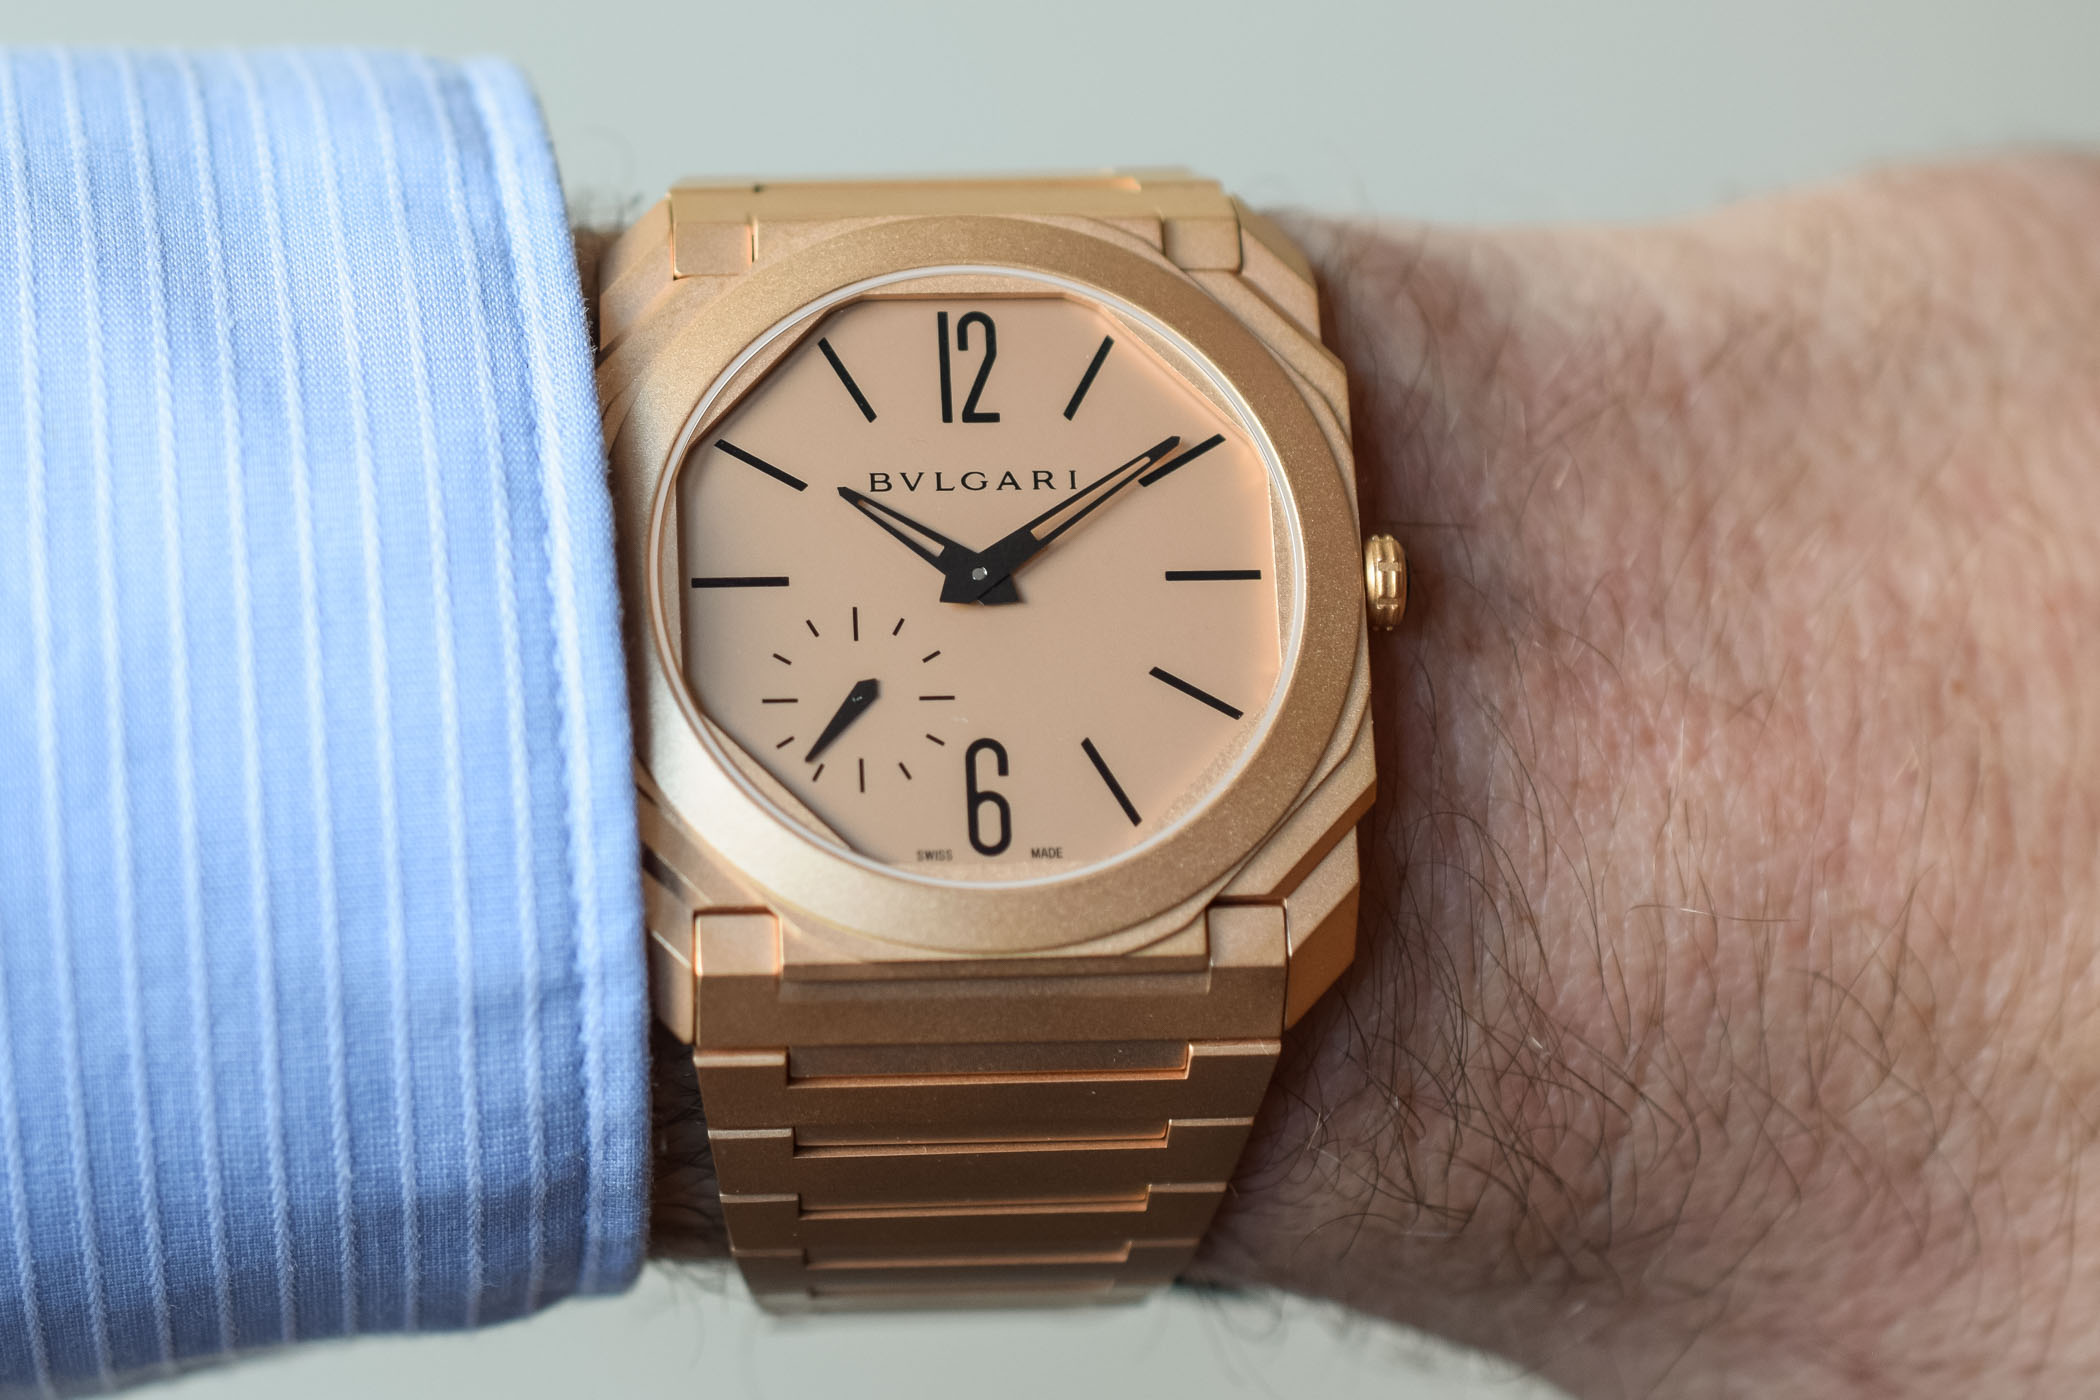 Bvlgari Octo Finissimo Automatic pink gold - Baselworld 2018